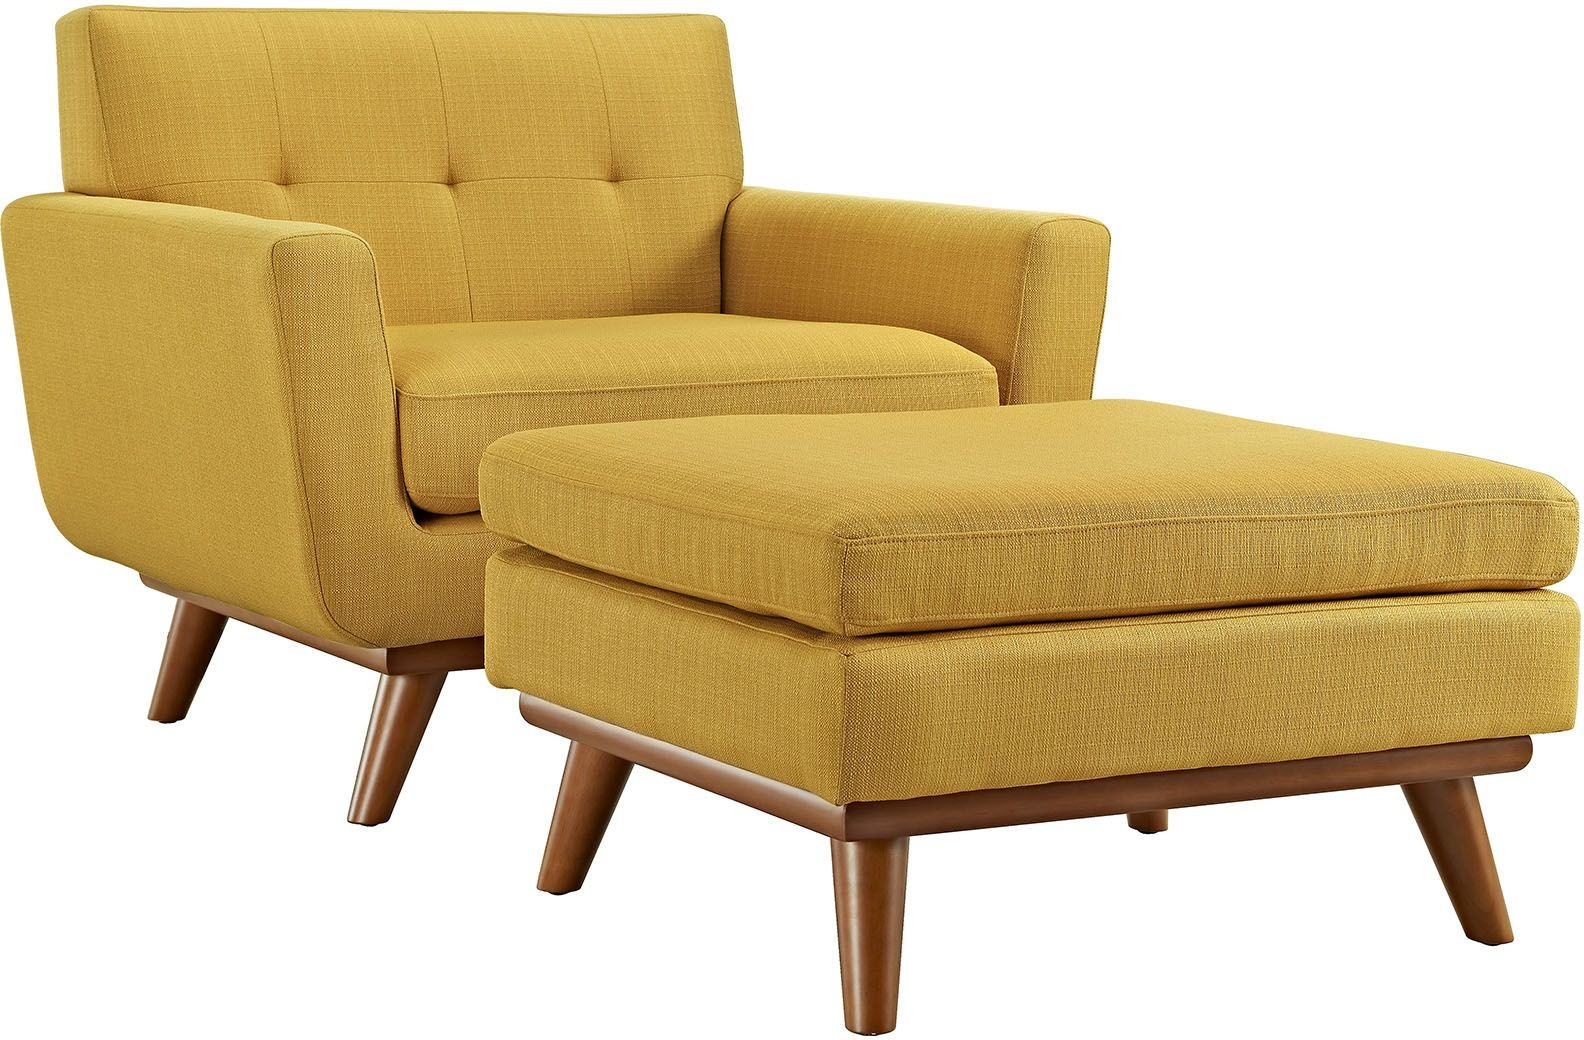 Engage citrus 2 piece armchair with ottoman from renegade for Armchair with ottoman